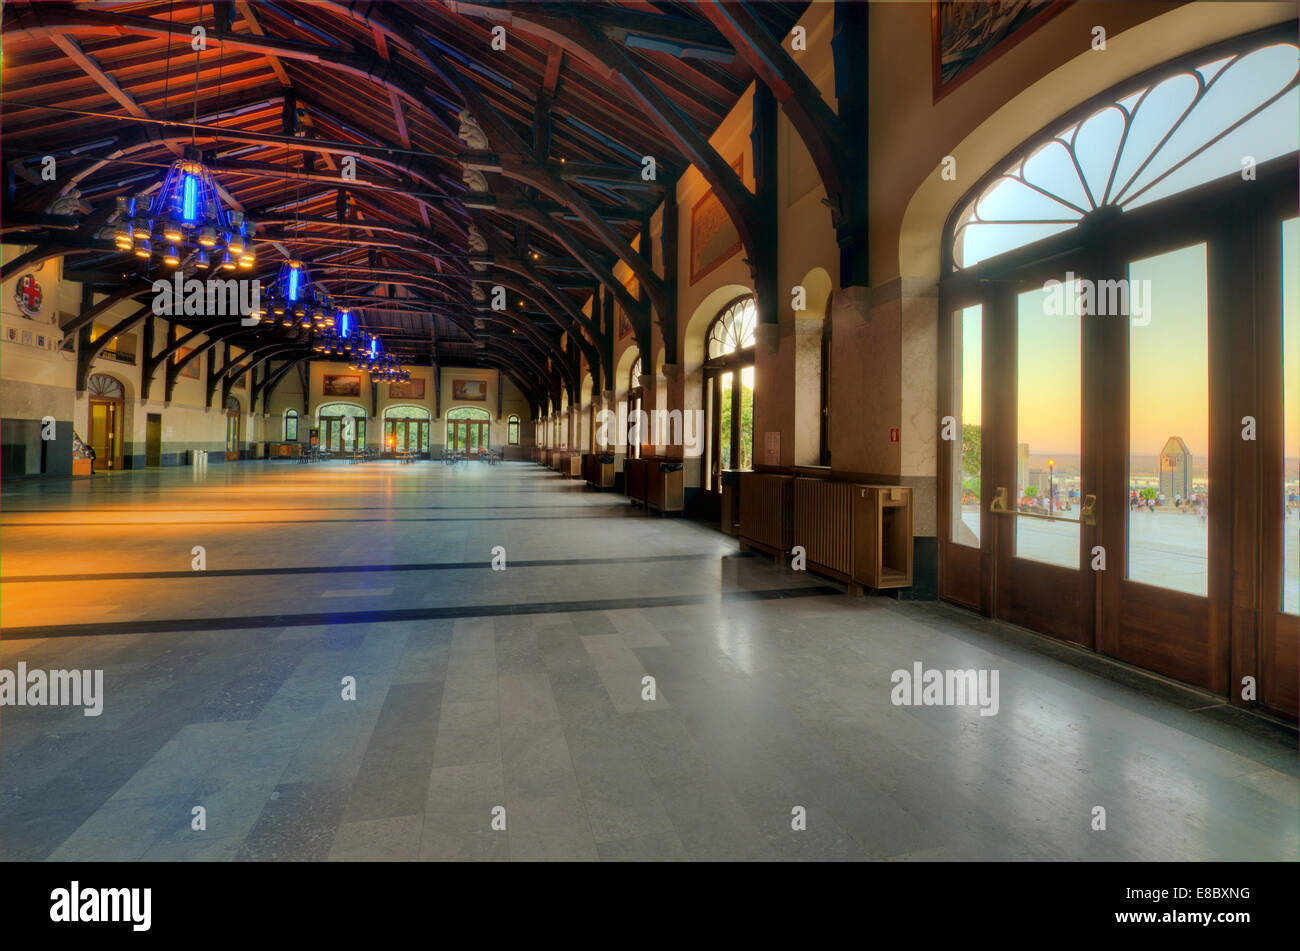 Interior of Mount Royal Chalet, in Montreal - Stock Image